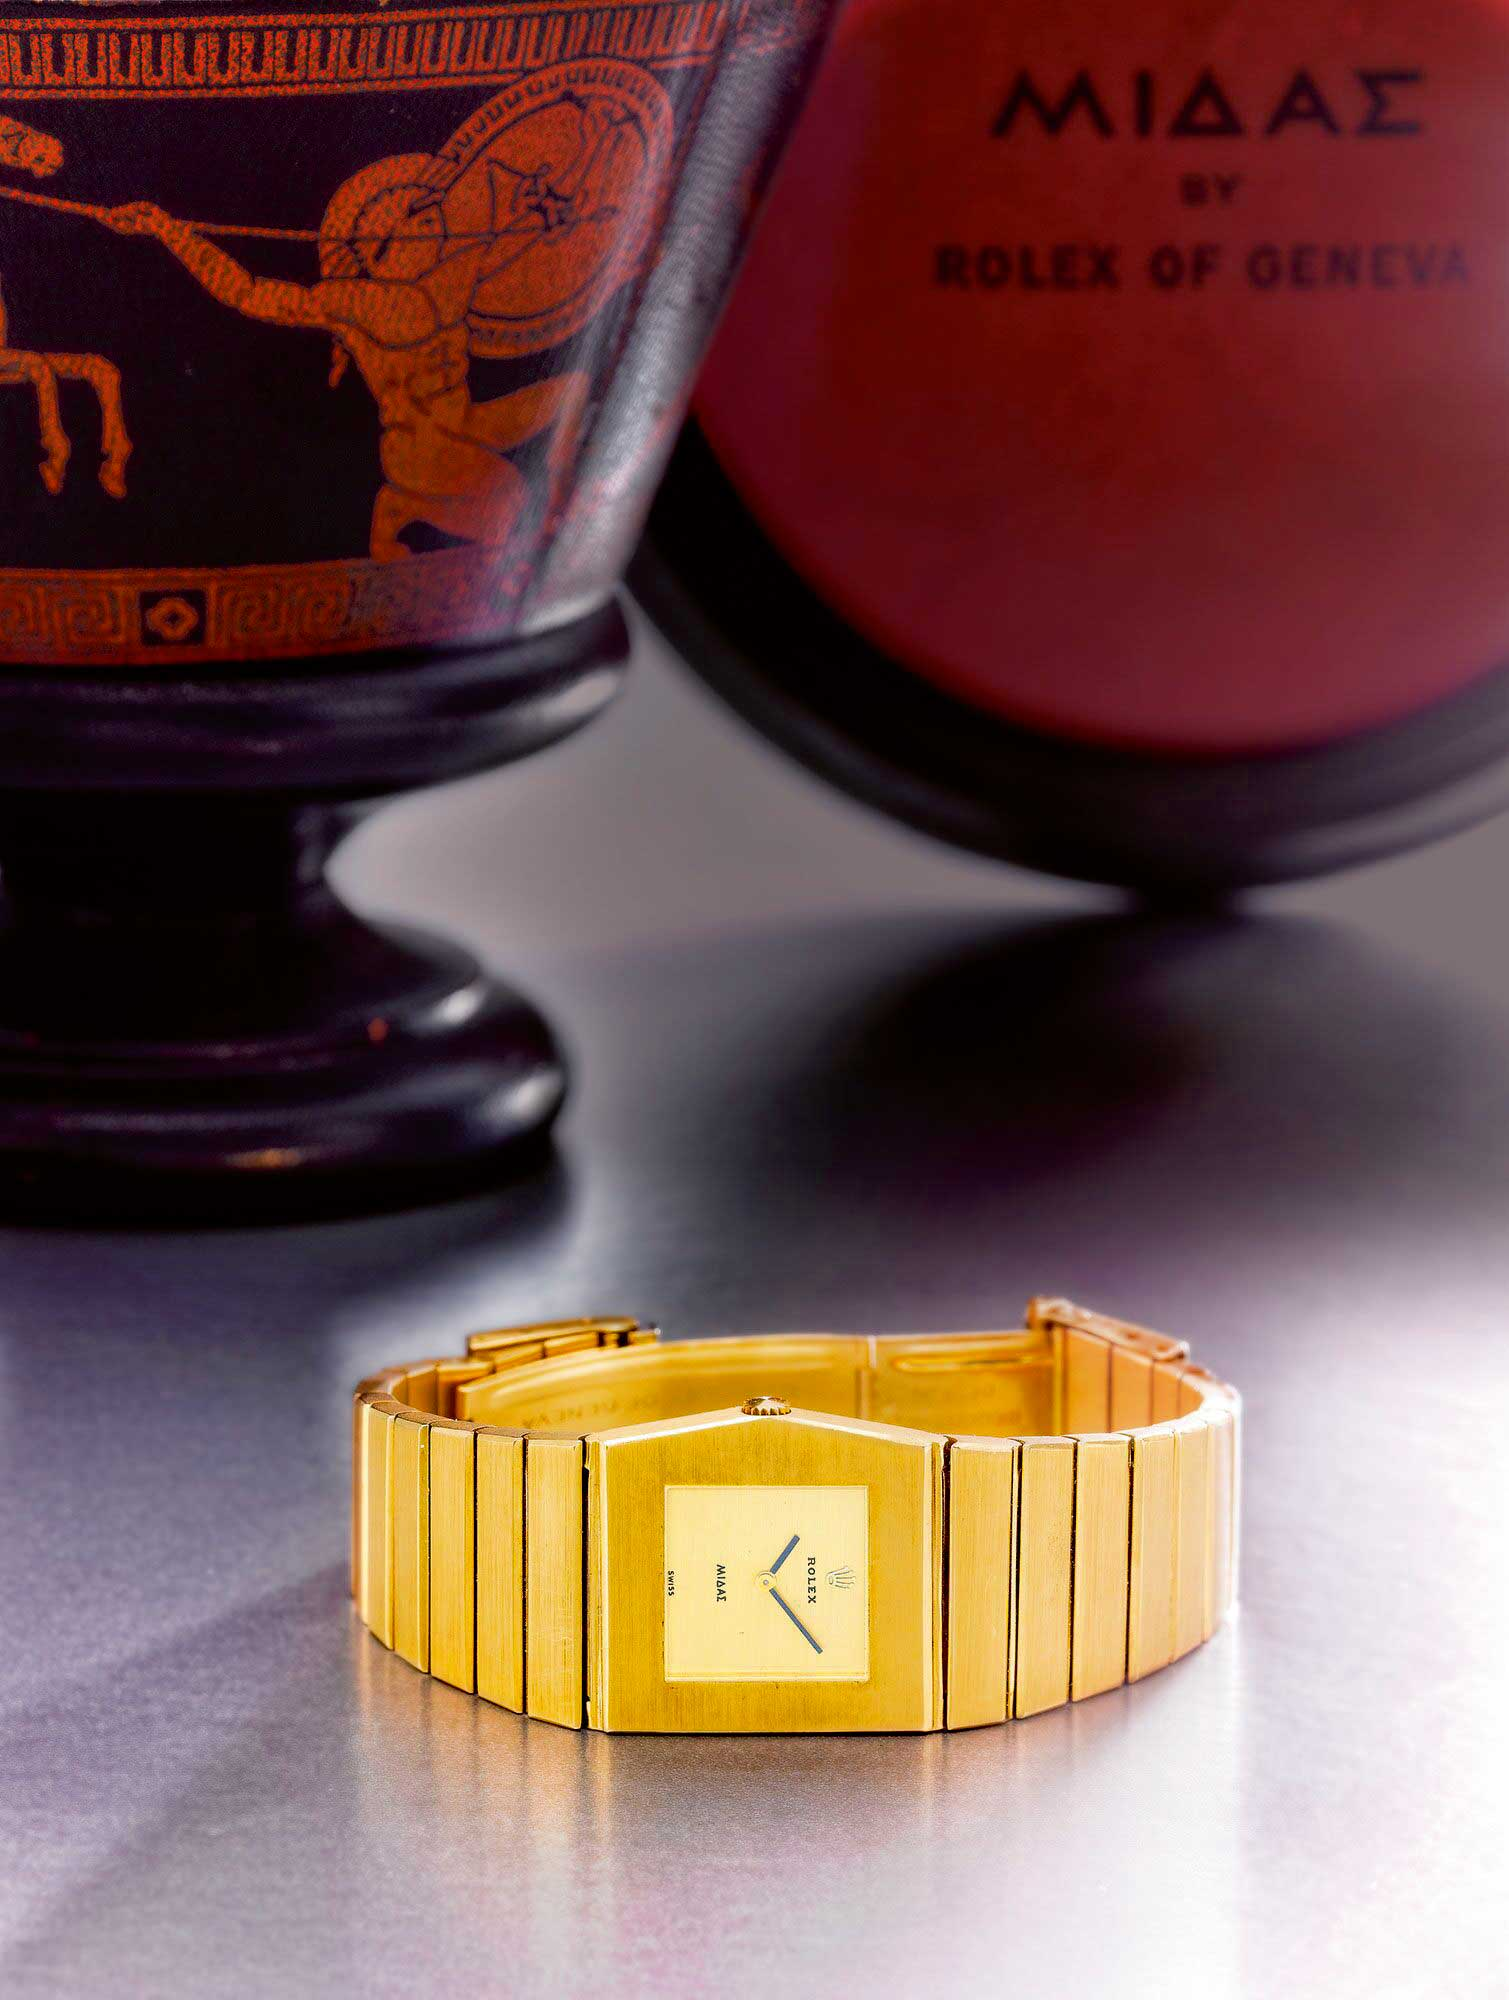 The Ref. 9630 is accompanied by a Rolex King Midas Urn inspired presentation box (Image: sothebys.com)